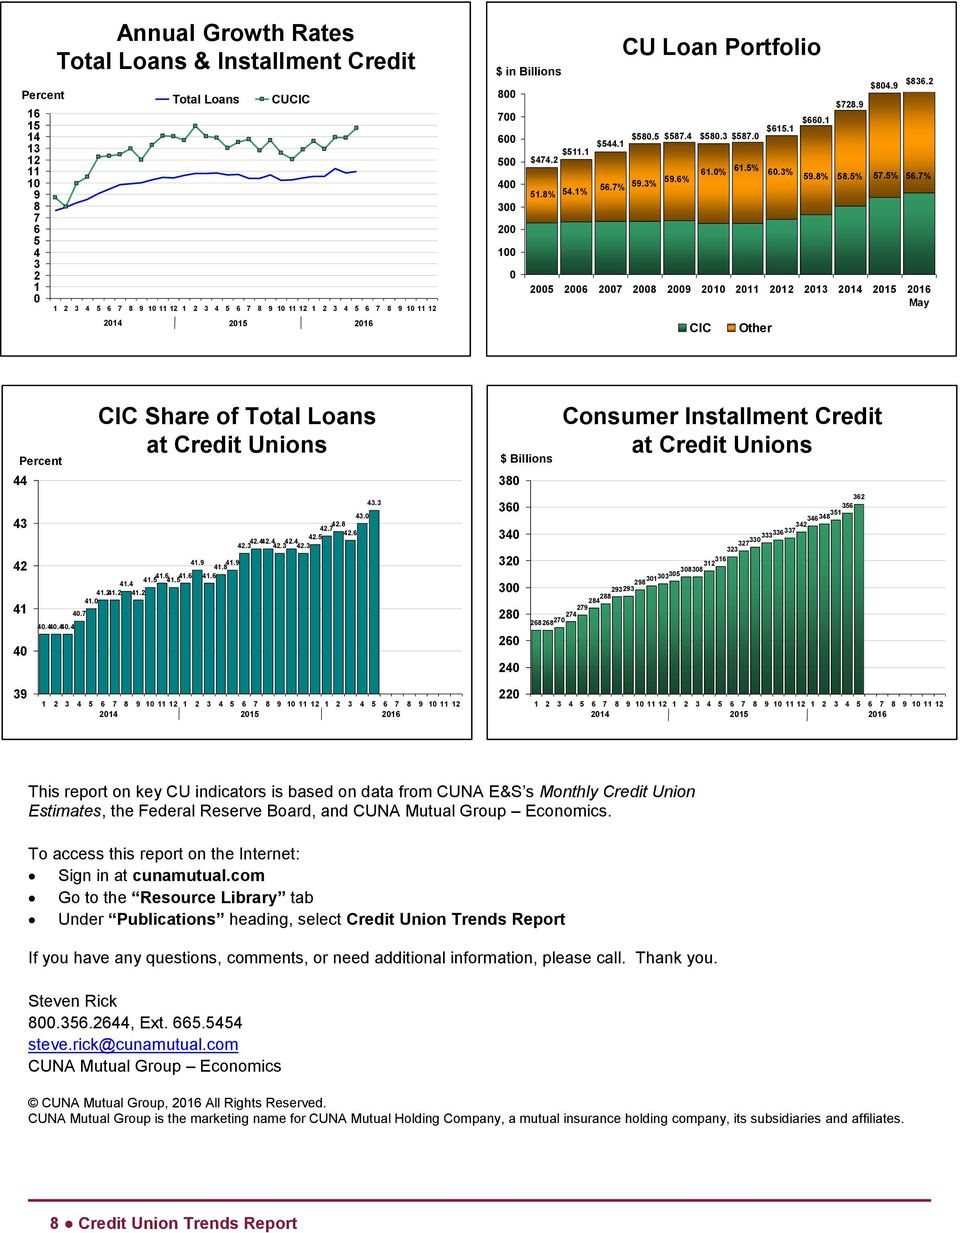 % 6.7% Percent 44 43 42 41 4 4.44.44.4 4.7 CIC Share of Total Loans at Credit Unions 41.9 41.8 41.9 41. 41.6 41. 41.6 41.6 41.4 41.241.2 41.2 41. 42.7 42.8 42.6 42.3 42.442.4 42.3 42.4 42. 42.3 43.